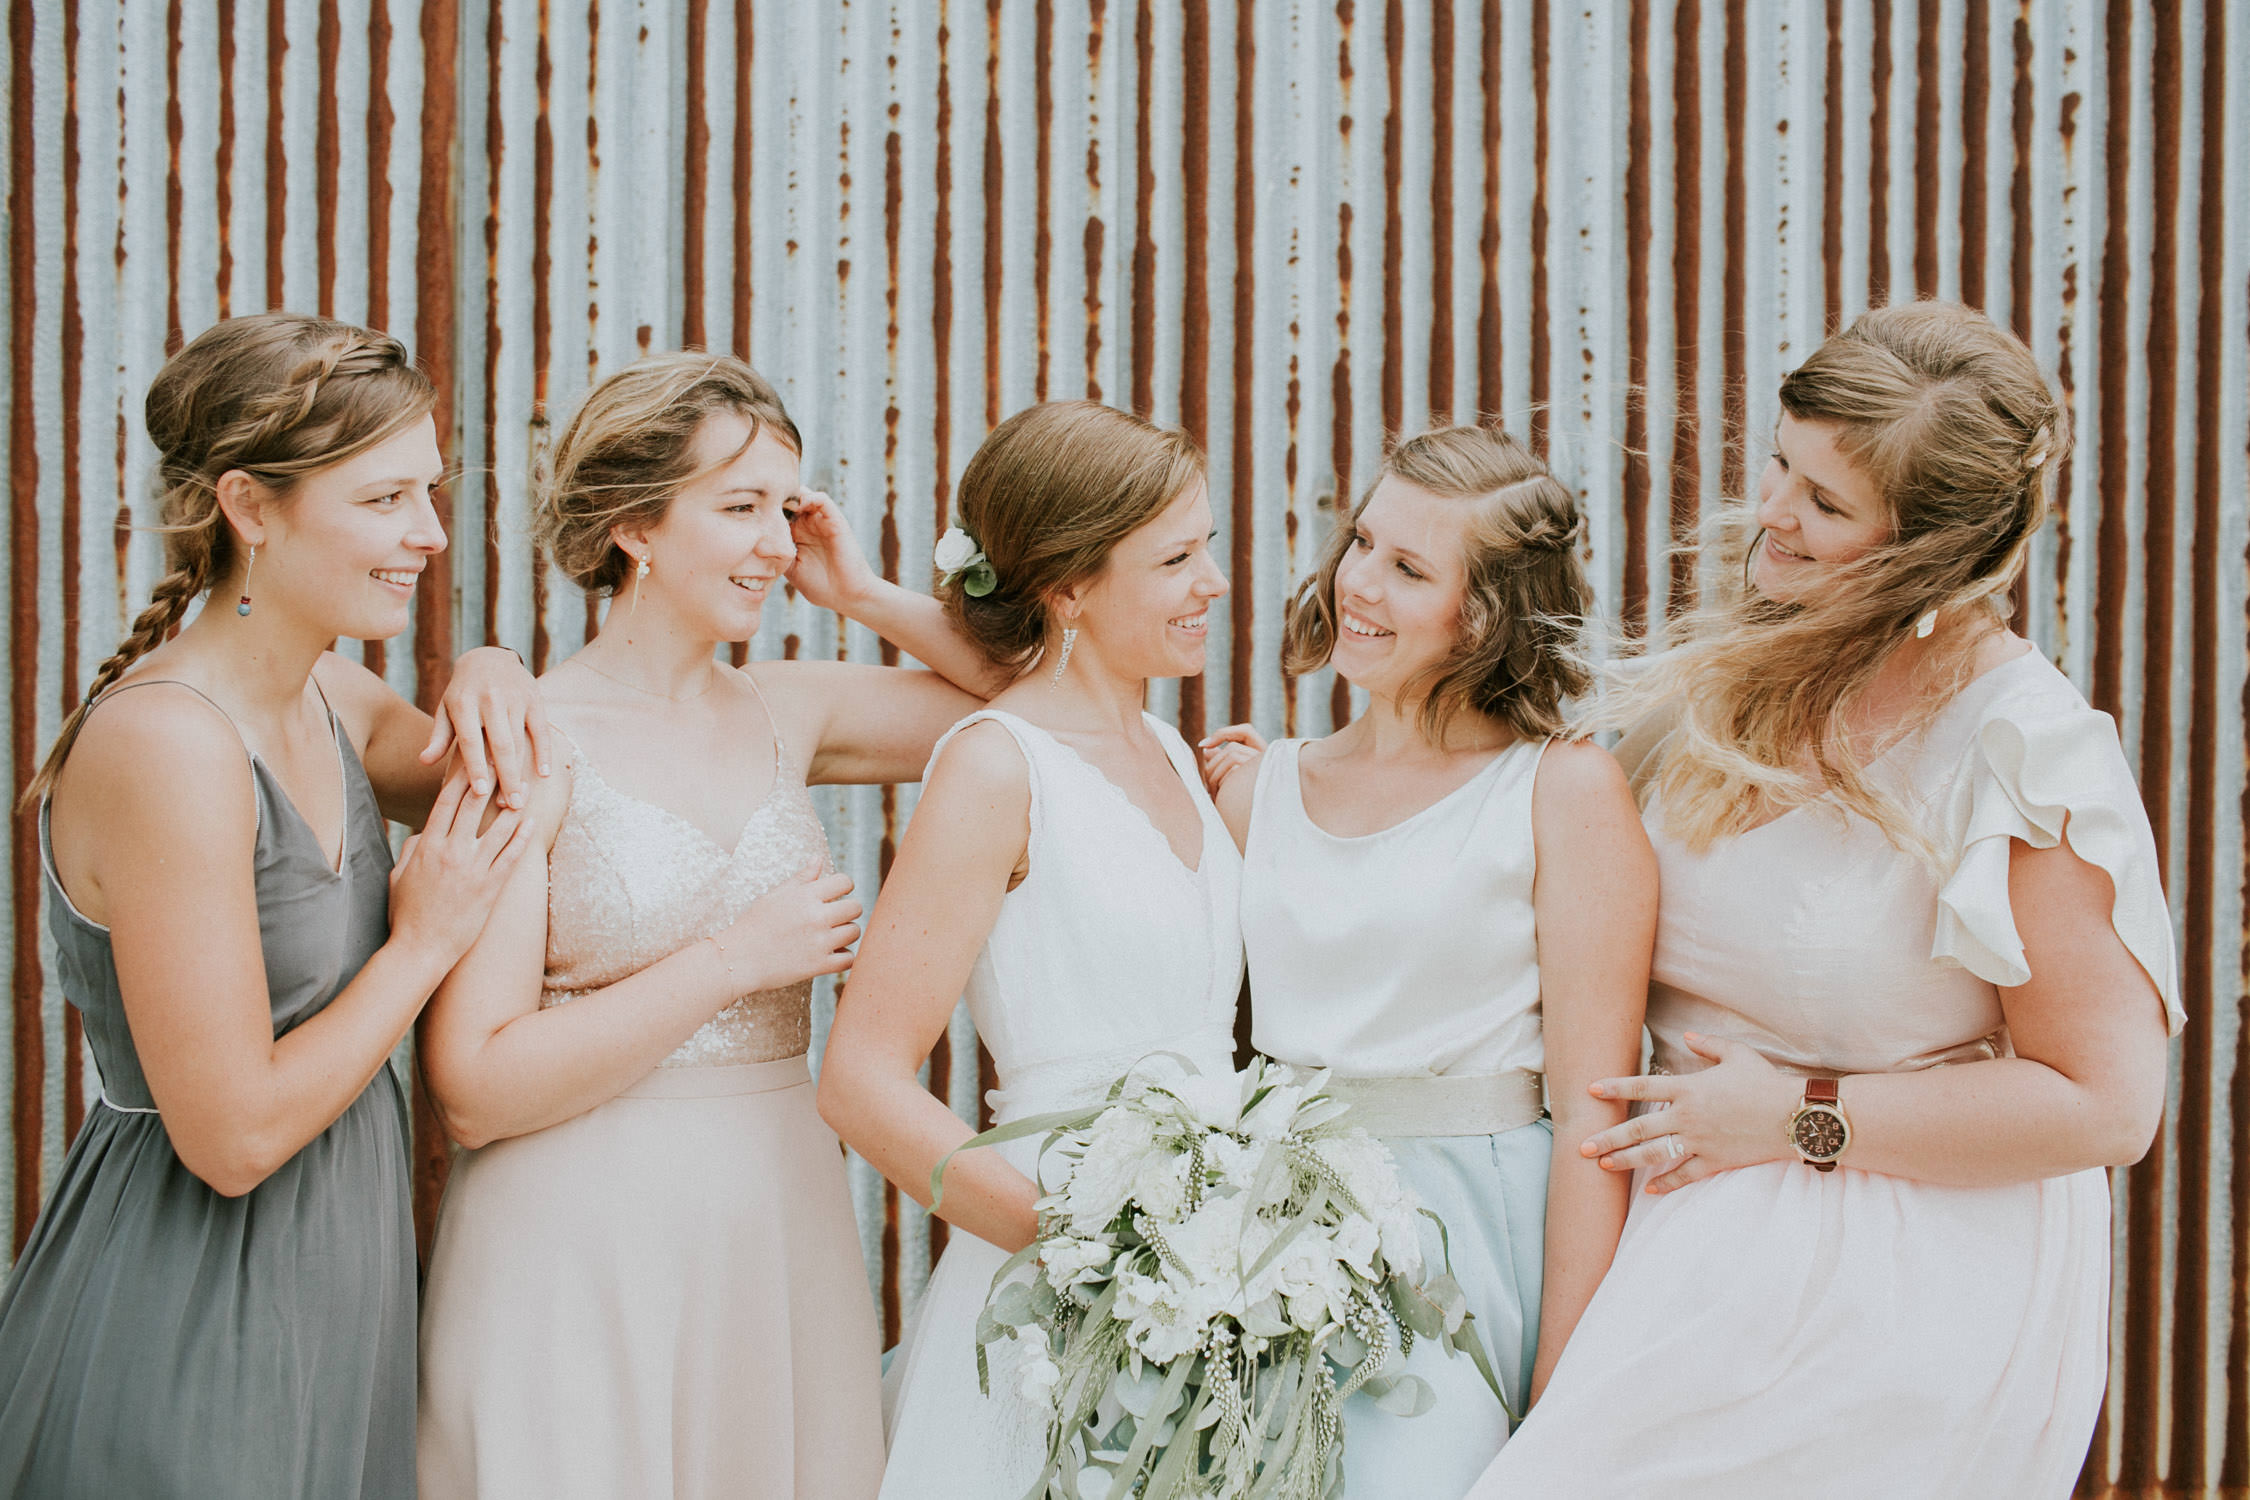 Wedding photography Bridesmaids Hoeve Engelendael, St-Laureins